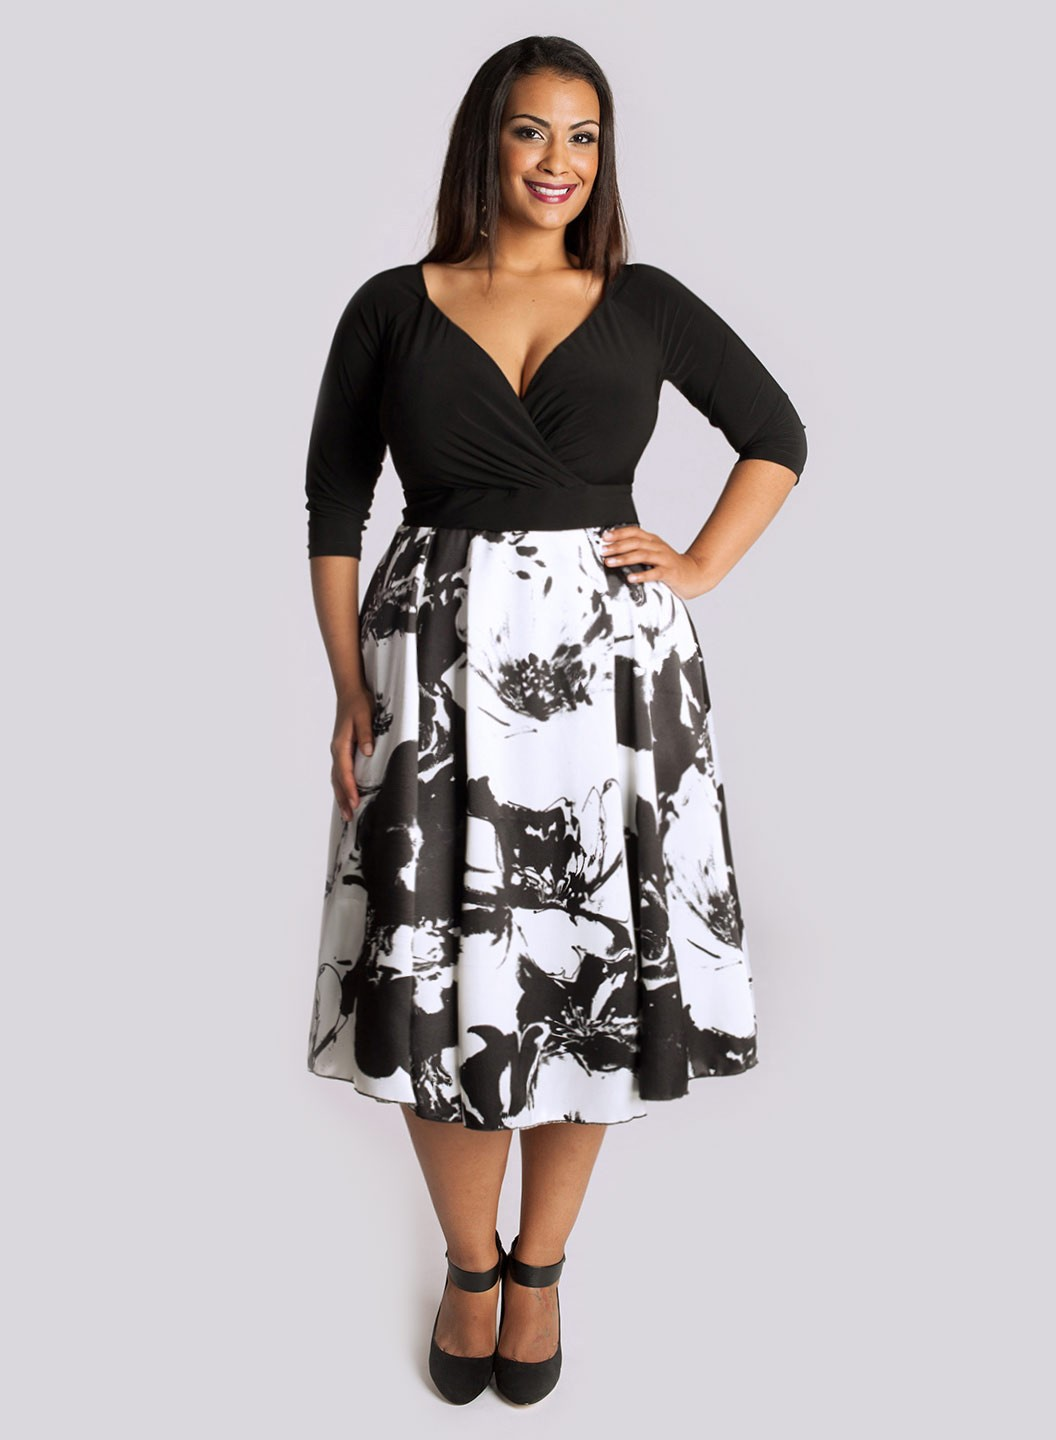 Inexpensive Designer Plus Size Clothing Cheap online clothing stores